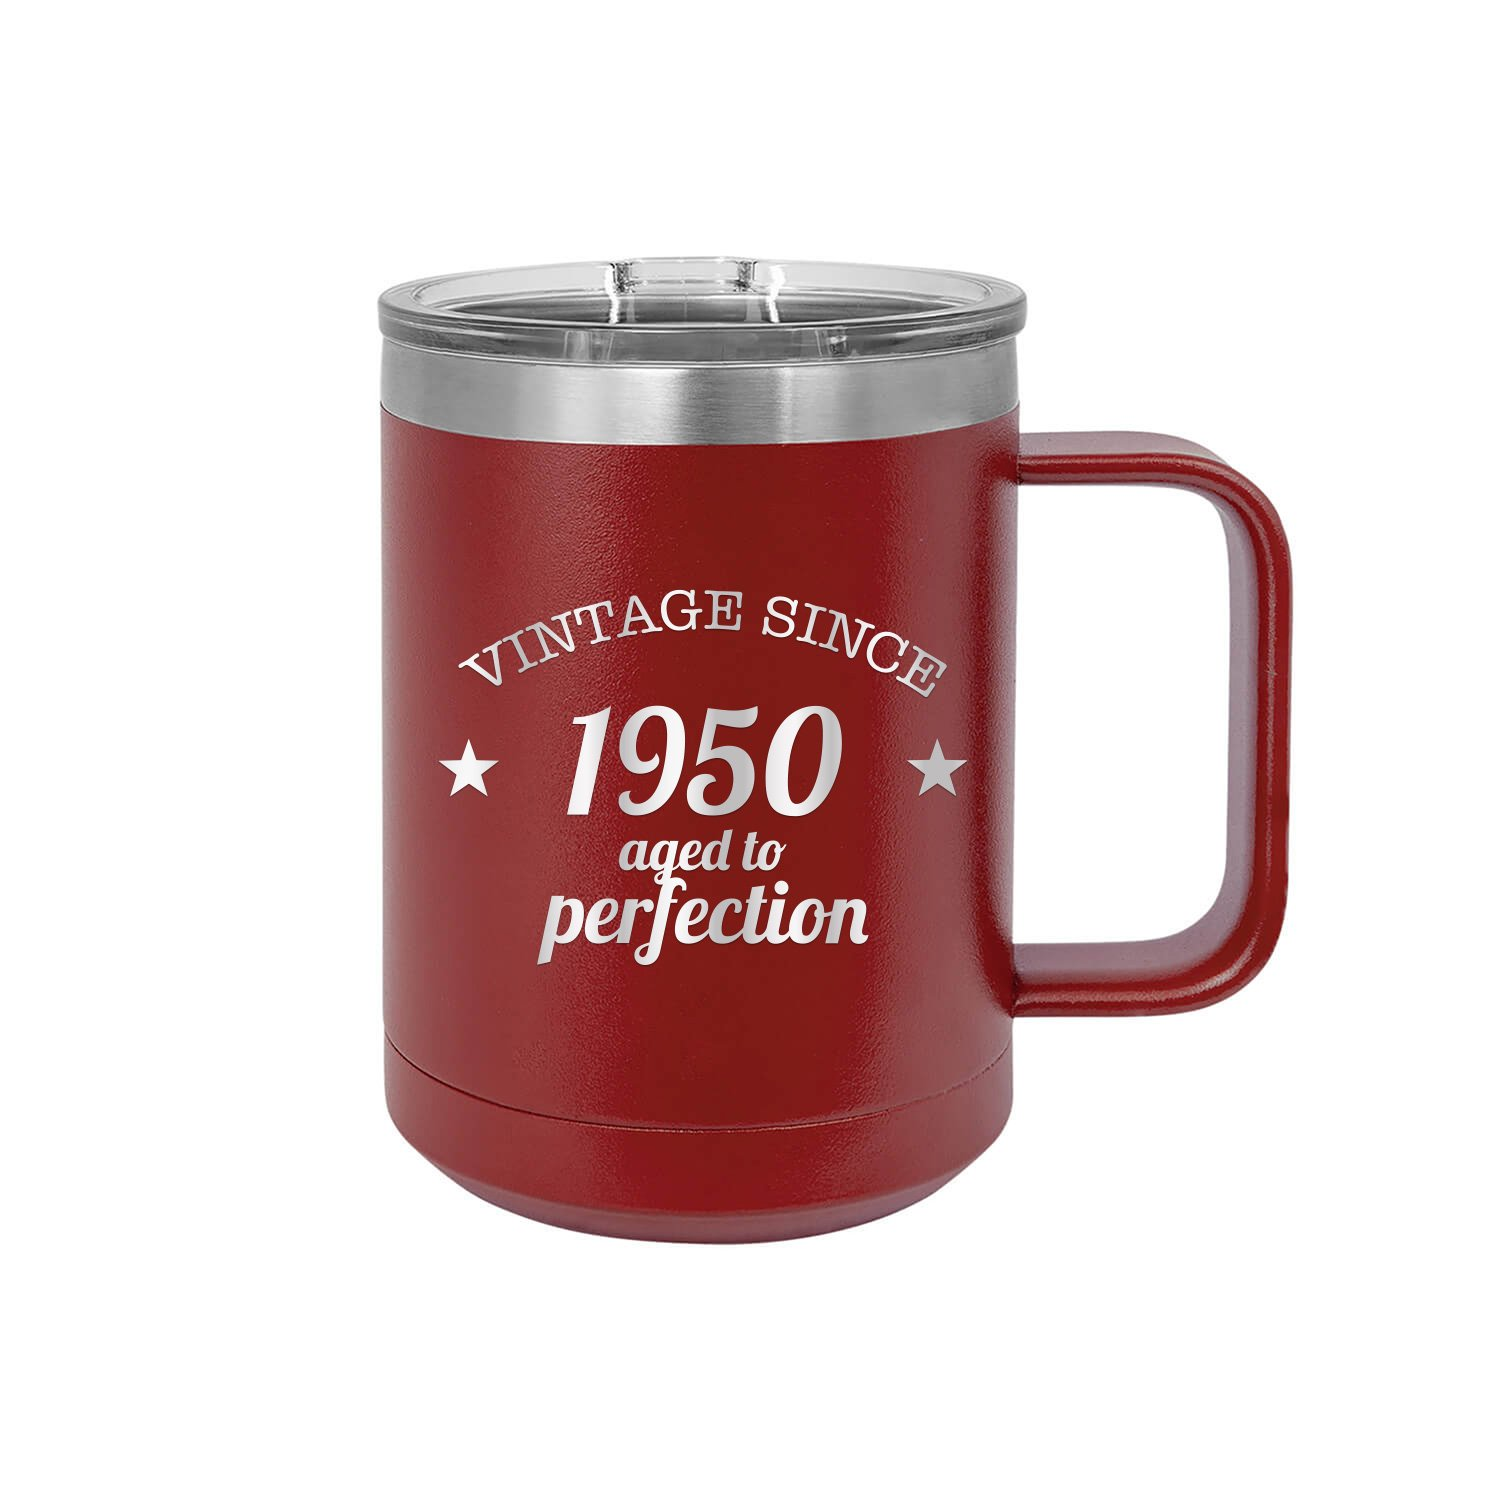 Vintage Since 1950 Aged To Perfection Engraved Coffee Mug With Handle Cup Unique Funny Birthday Gift Graduation Gifts For Women 70th Birthday Seventy Over The Hill Hilarious 1950 15 Oz Mug